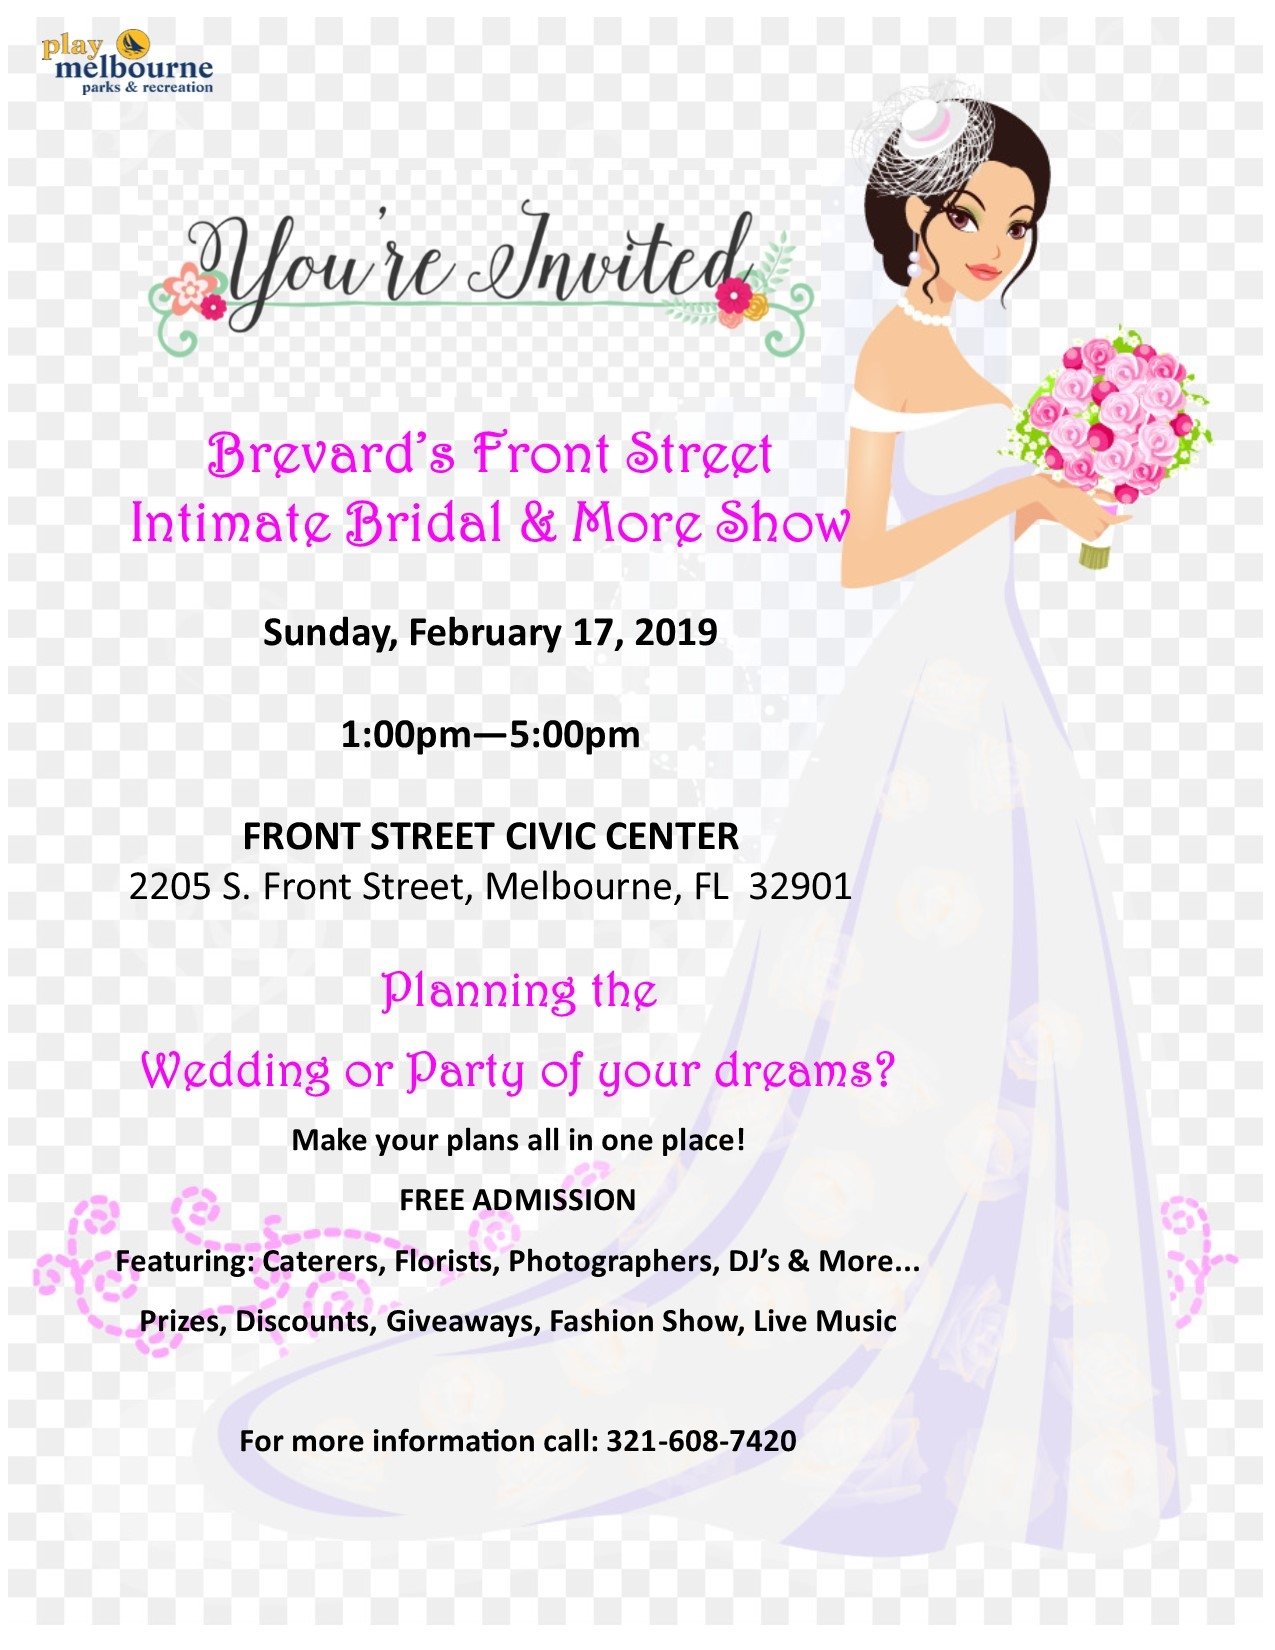 Brevard's Front Street Bridal and More Show